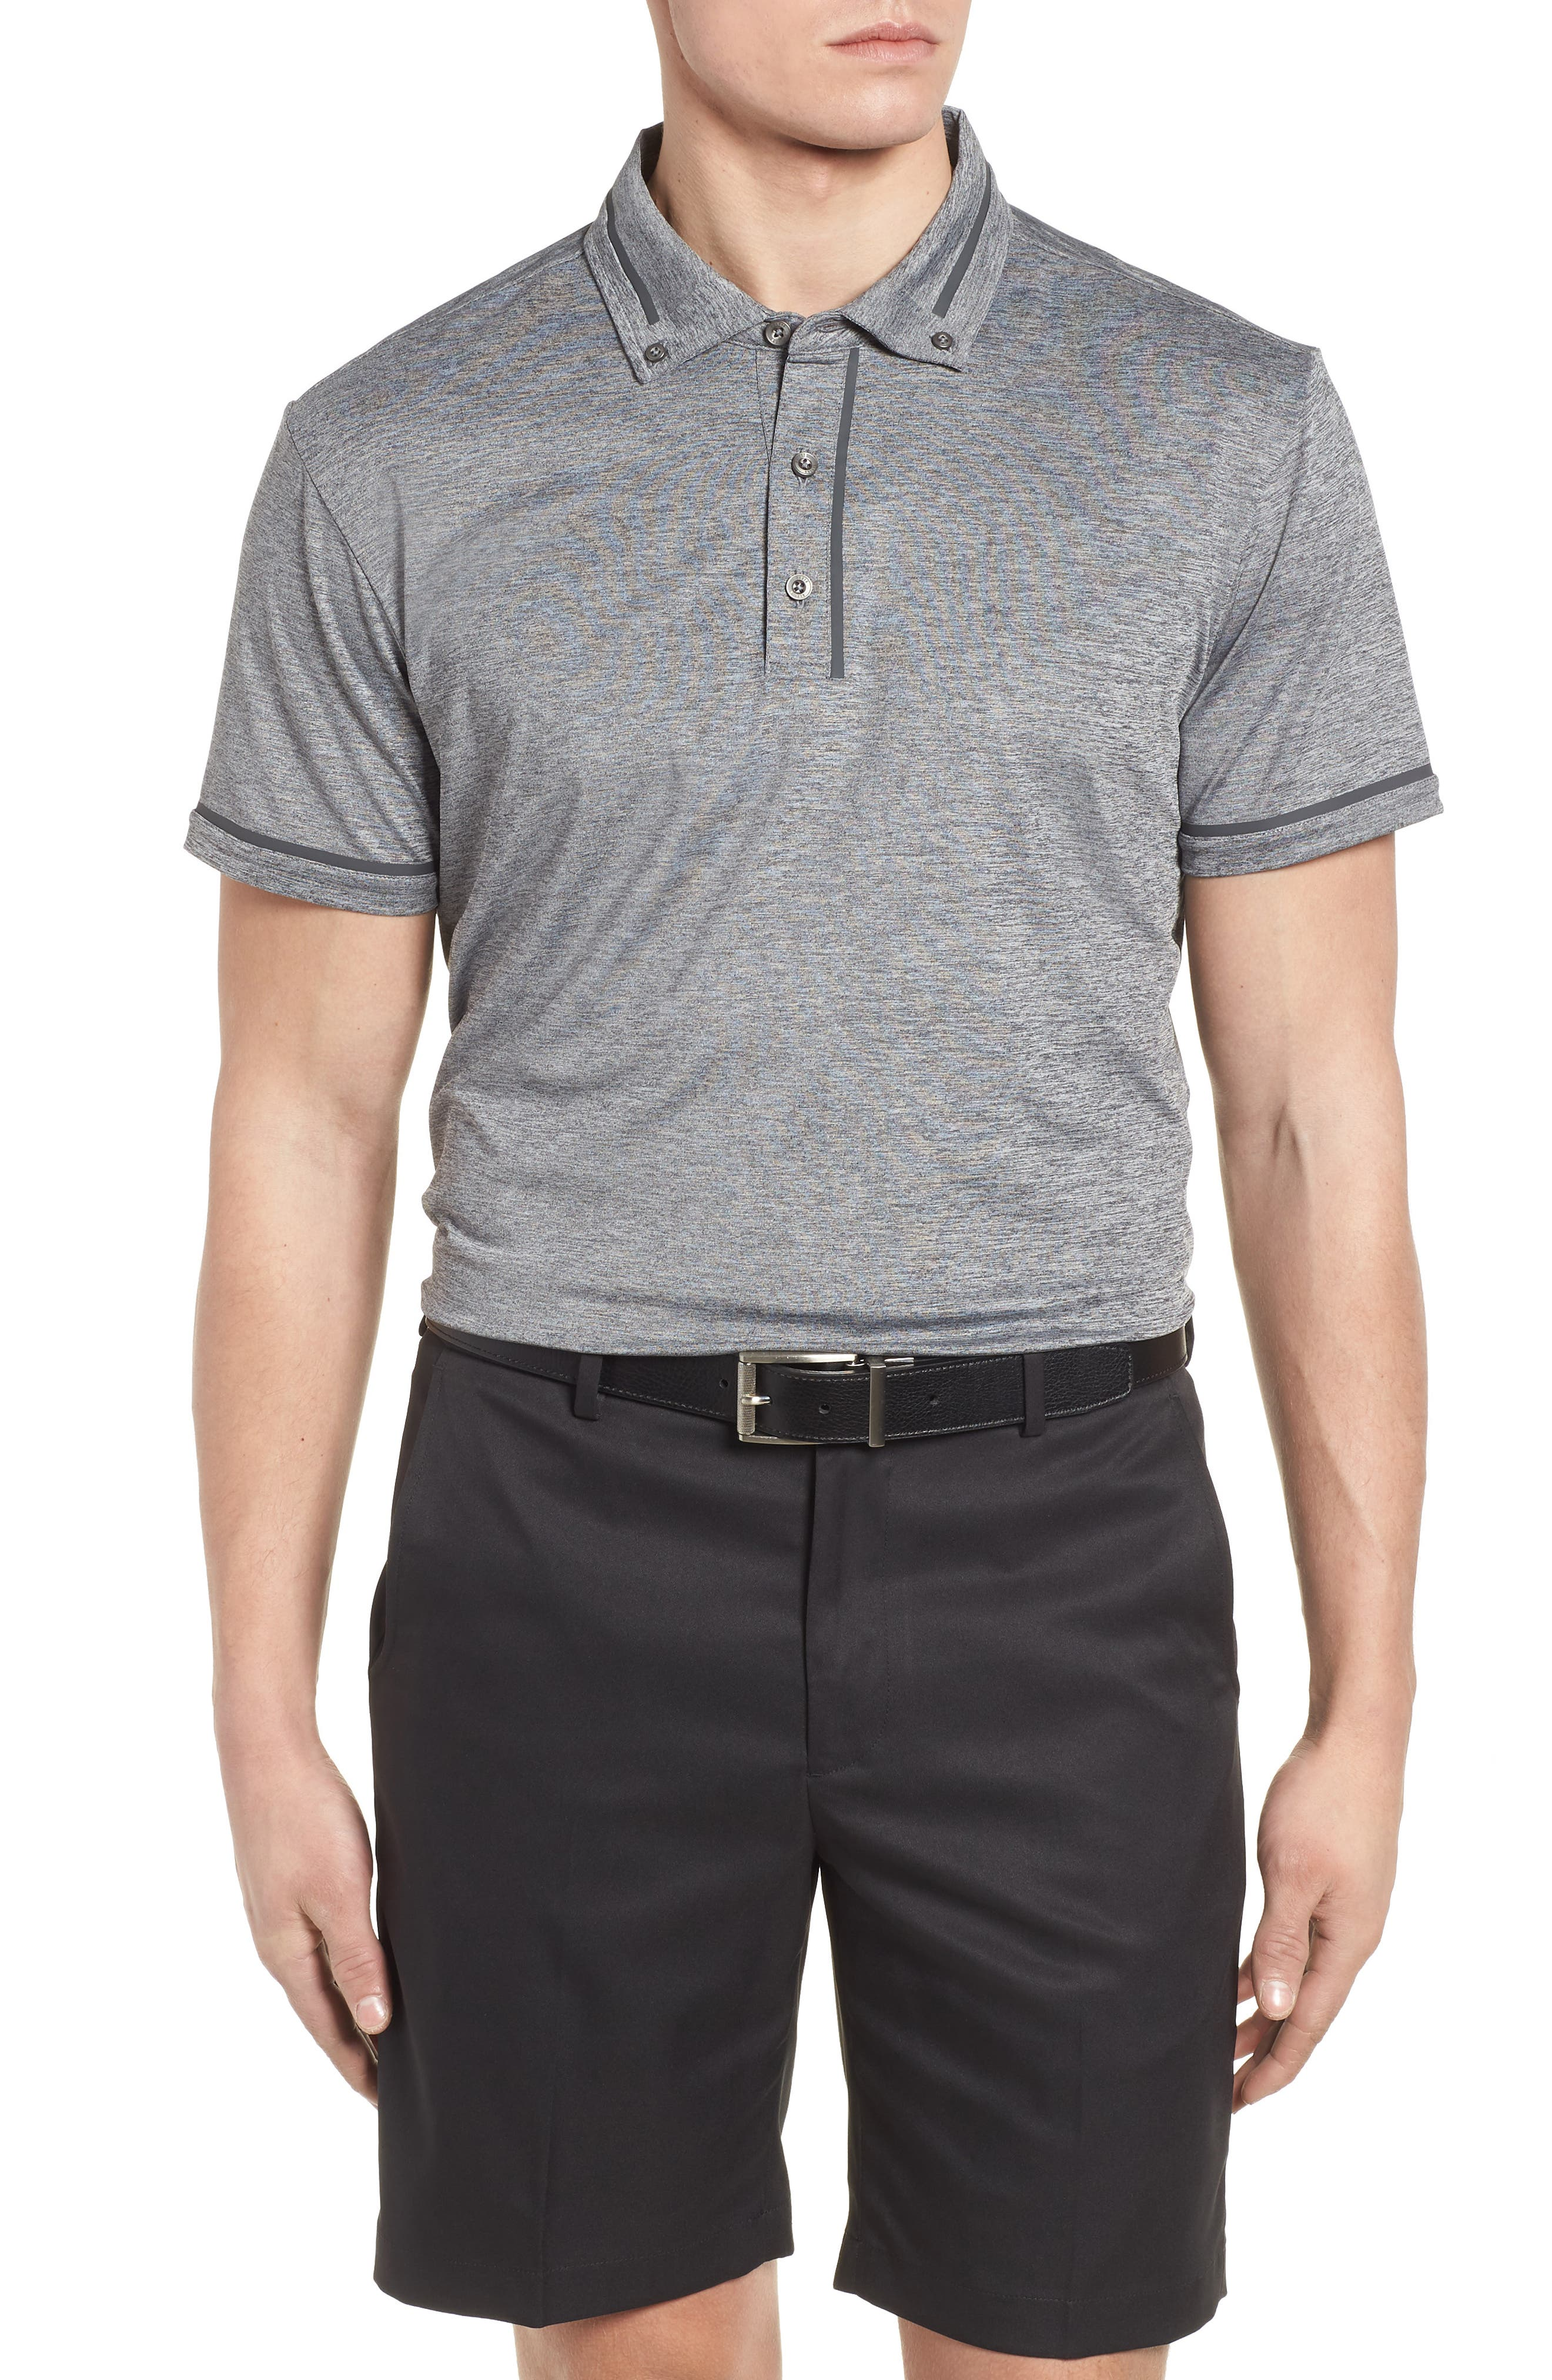 R18 Tech Chapman Welded Trim Polo,                             Main thumbnail 1, color,                             CHARCOAL HEATHER